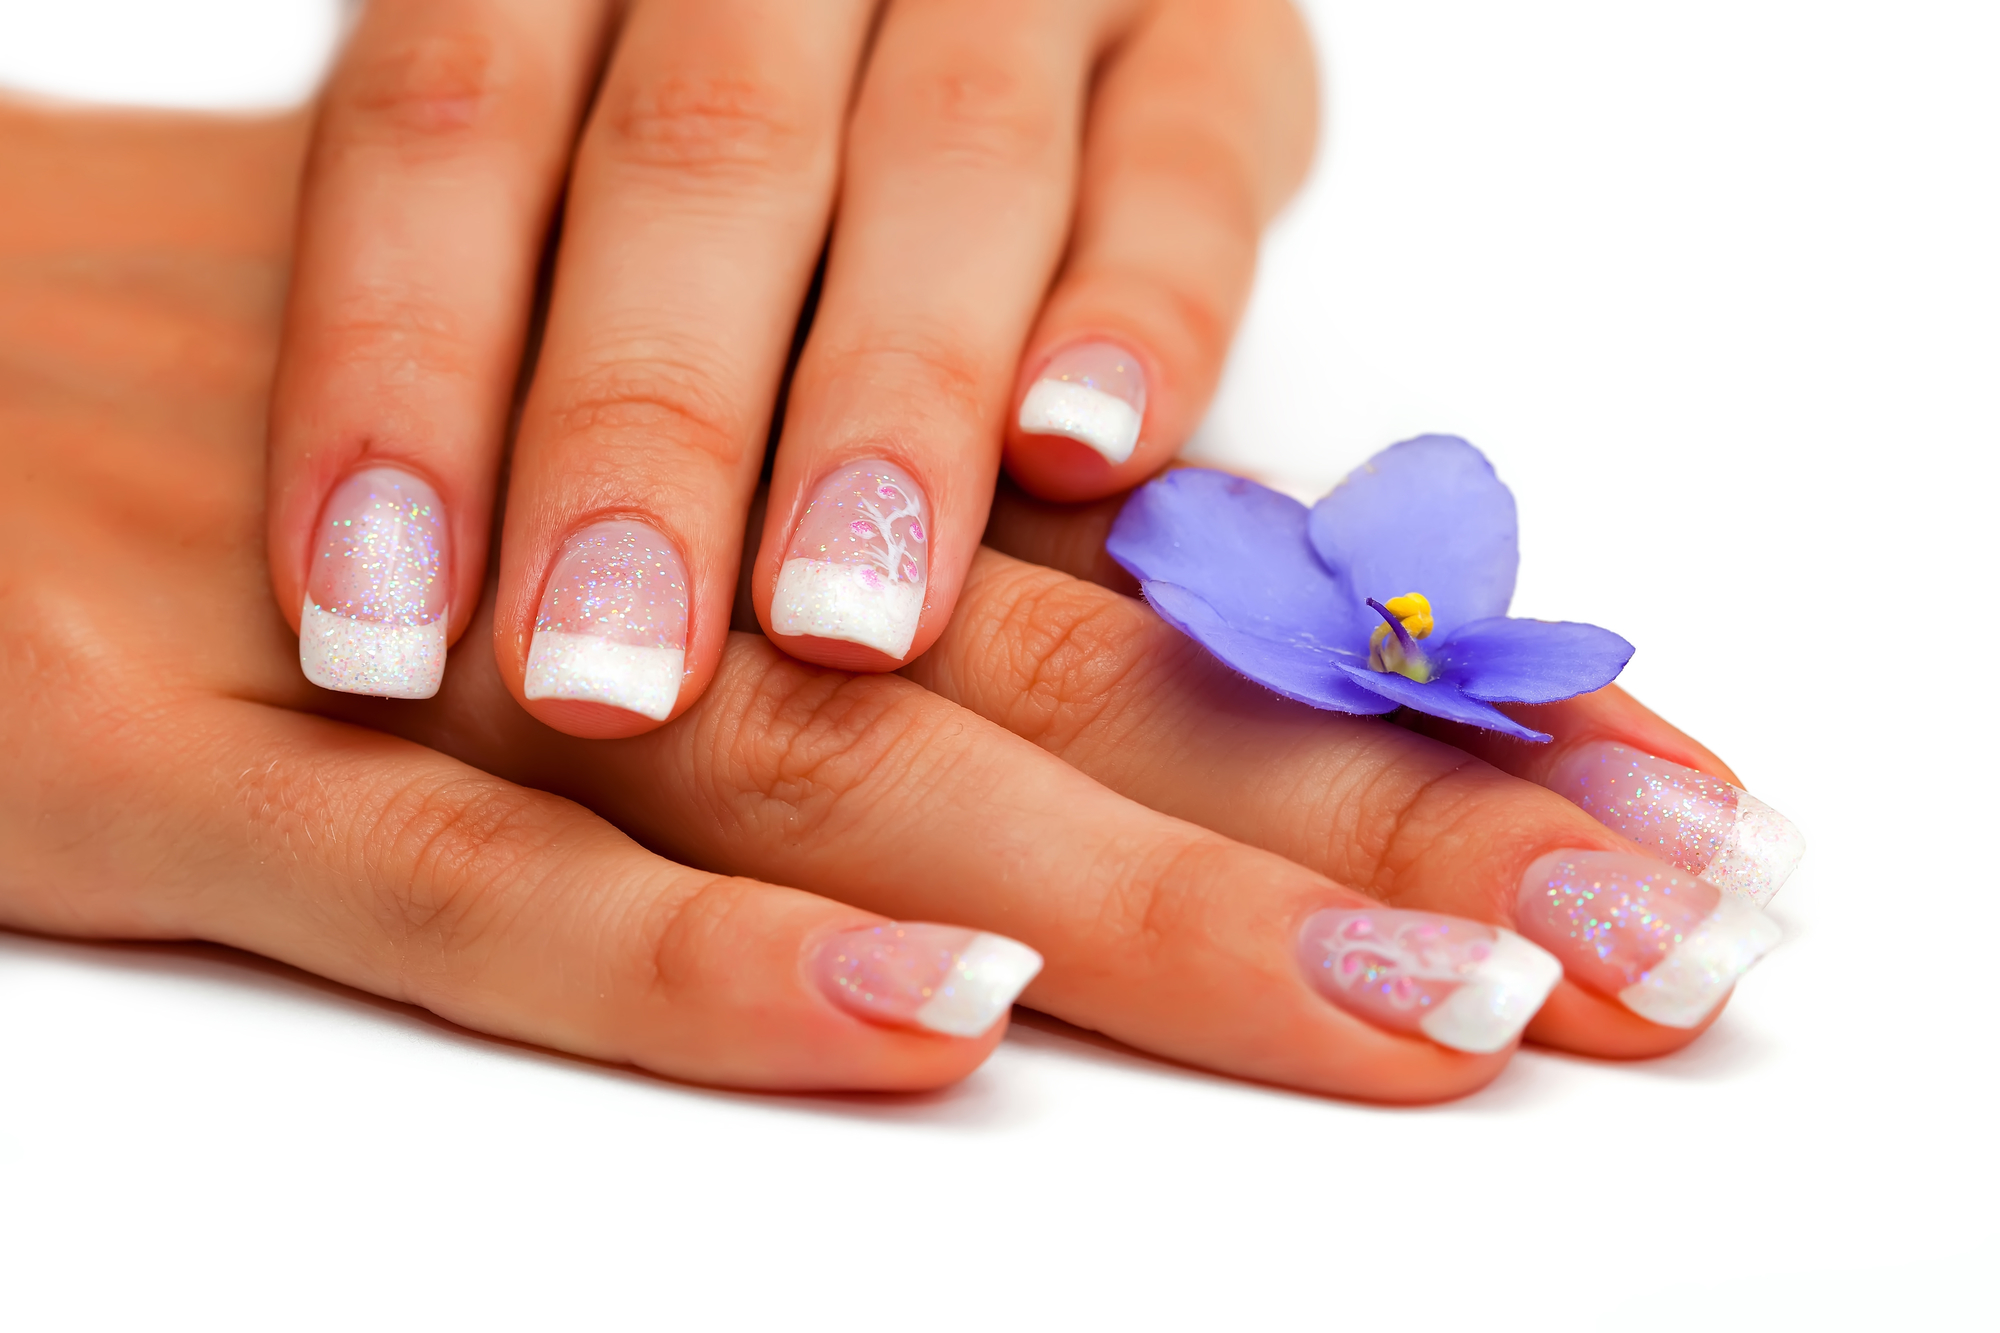 Polygel french manicure hand